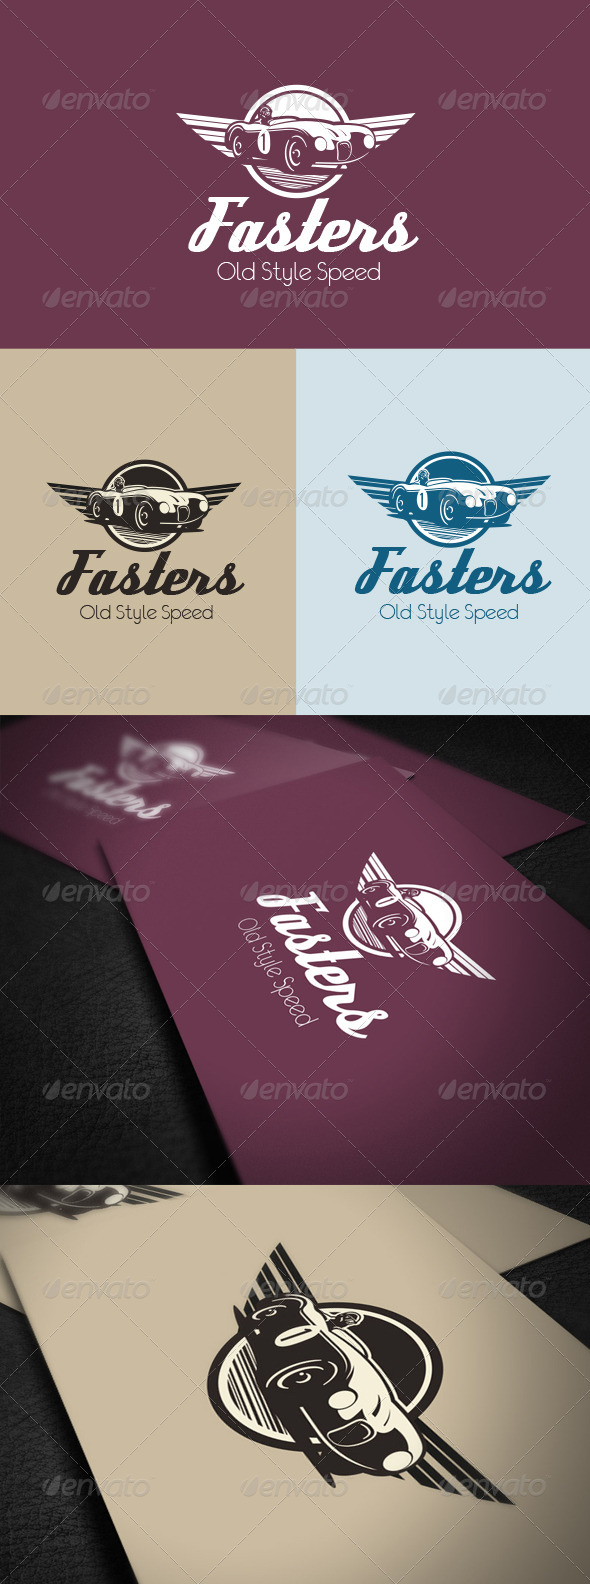 GraphicRiver Fasters Old Style 5735954